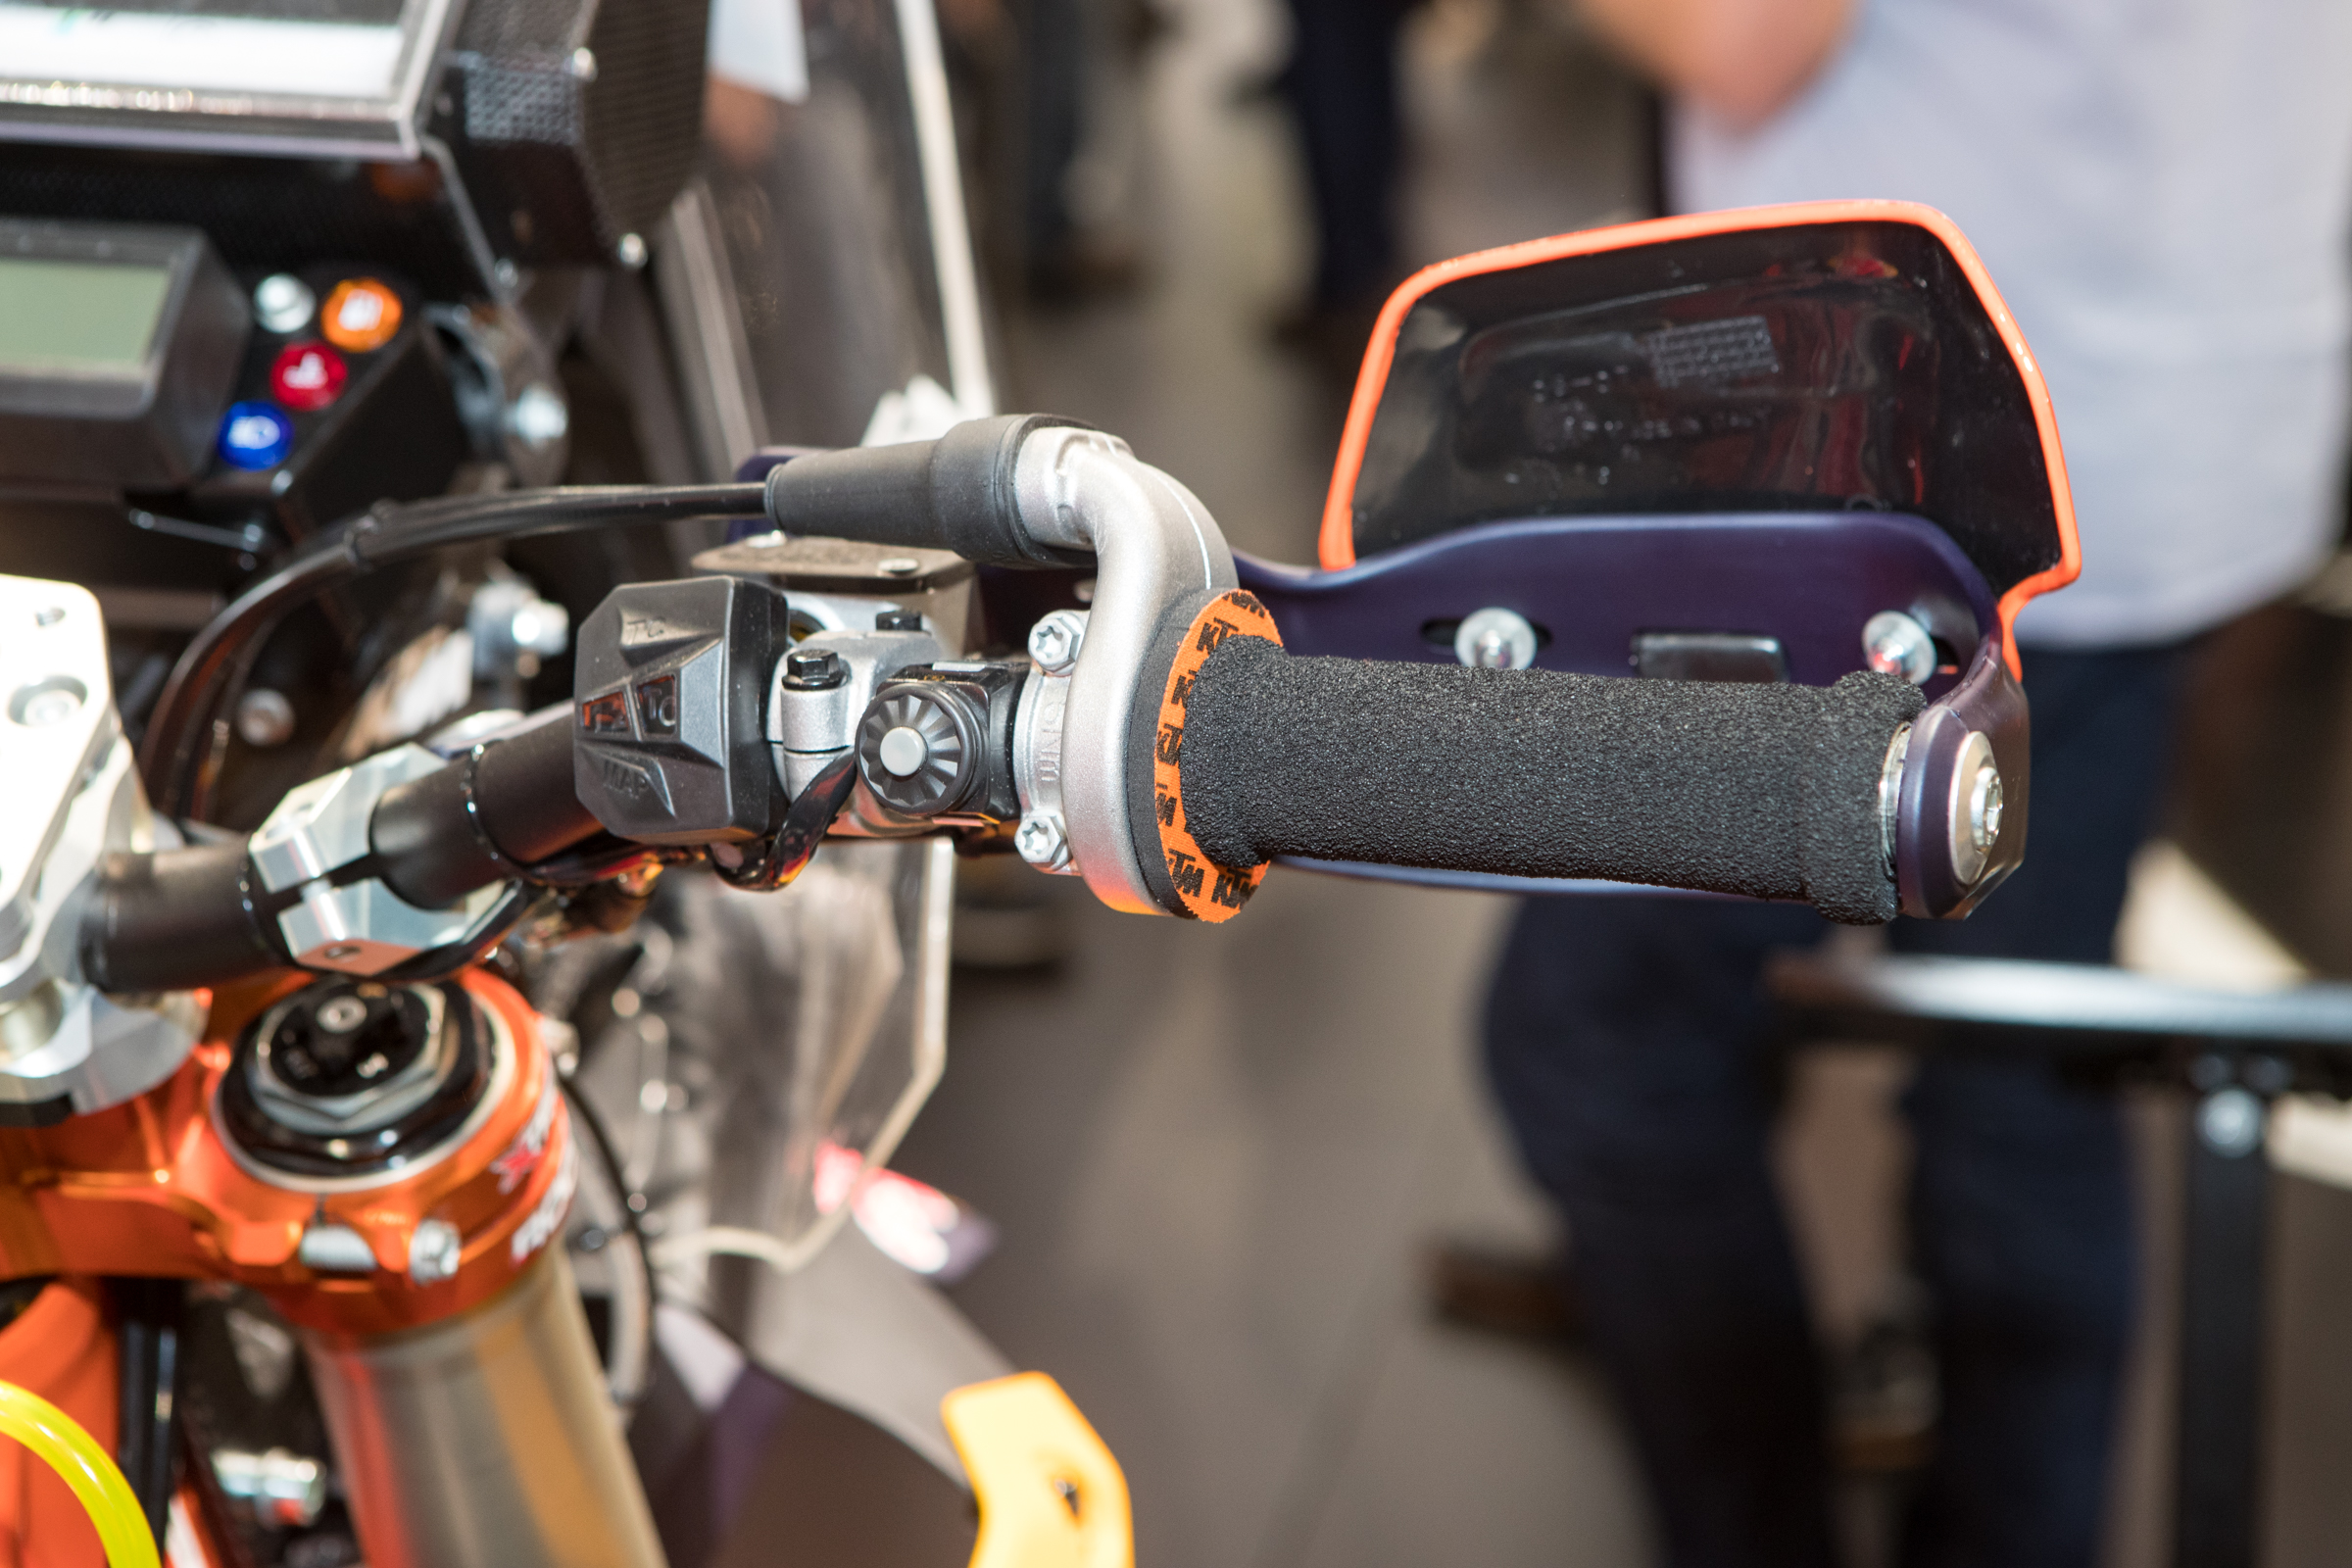 Long days in the saddle require come different, more comfortable grips.